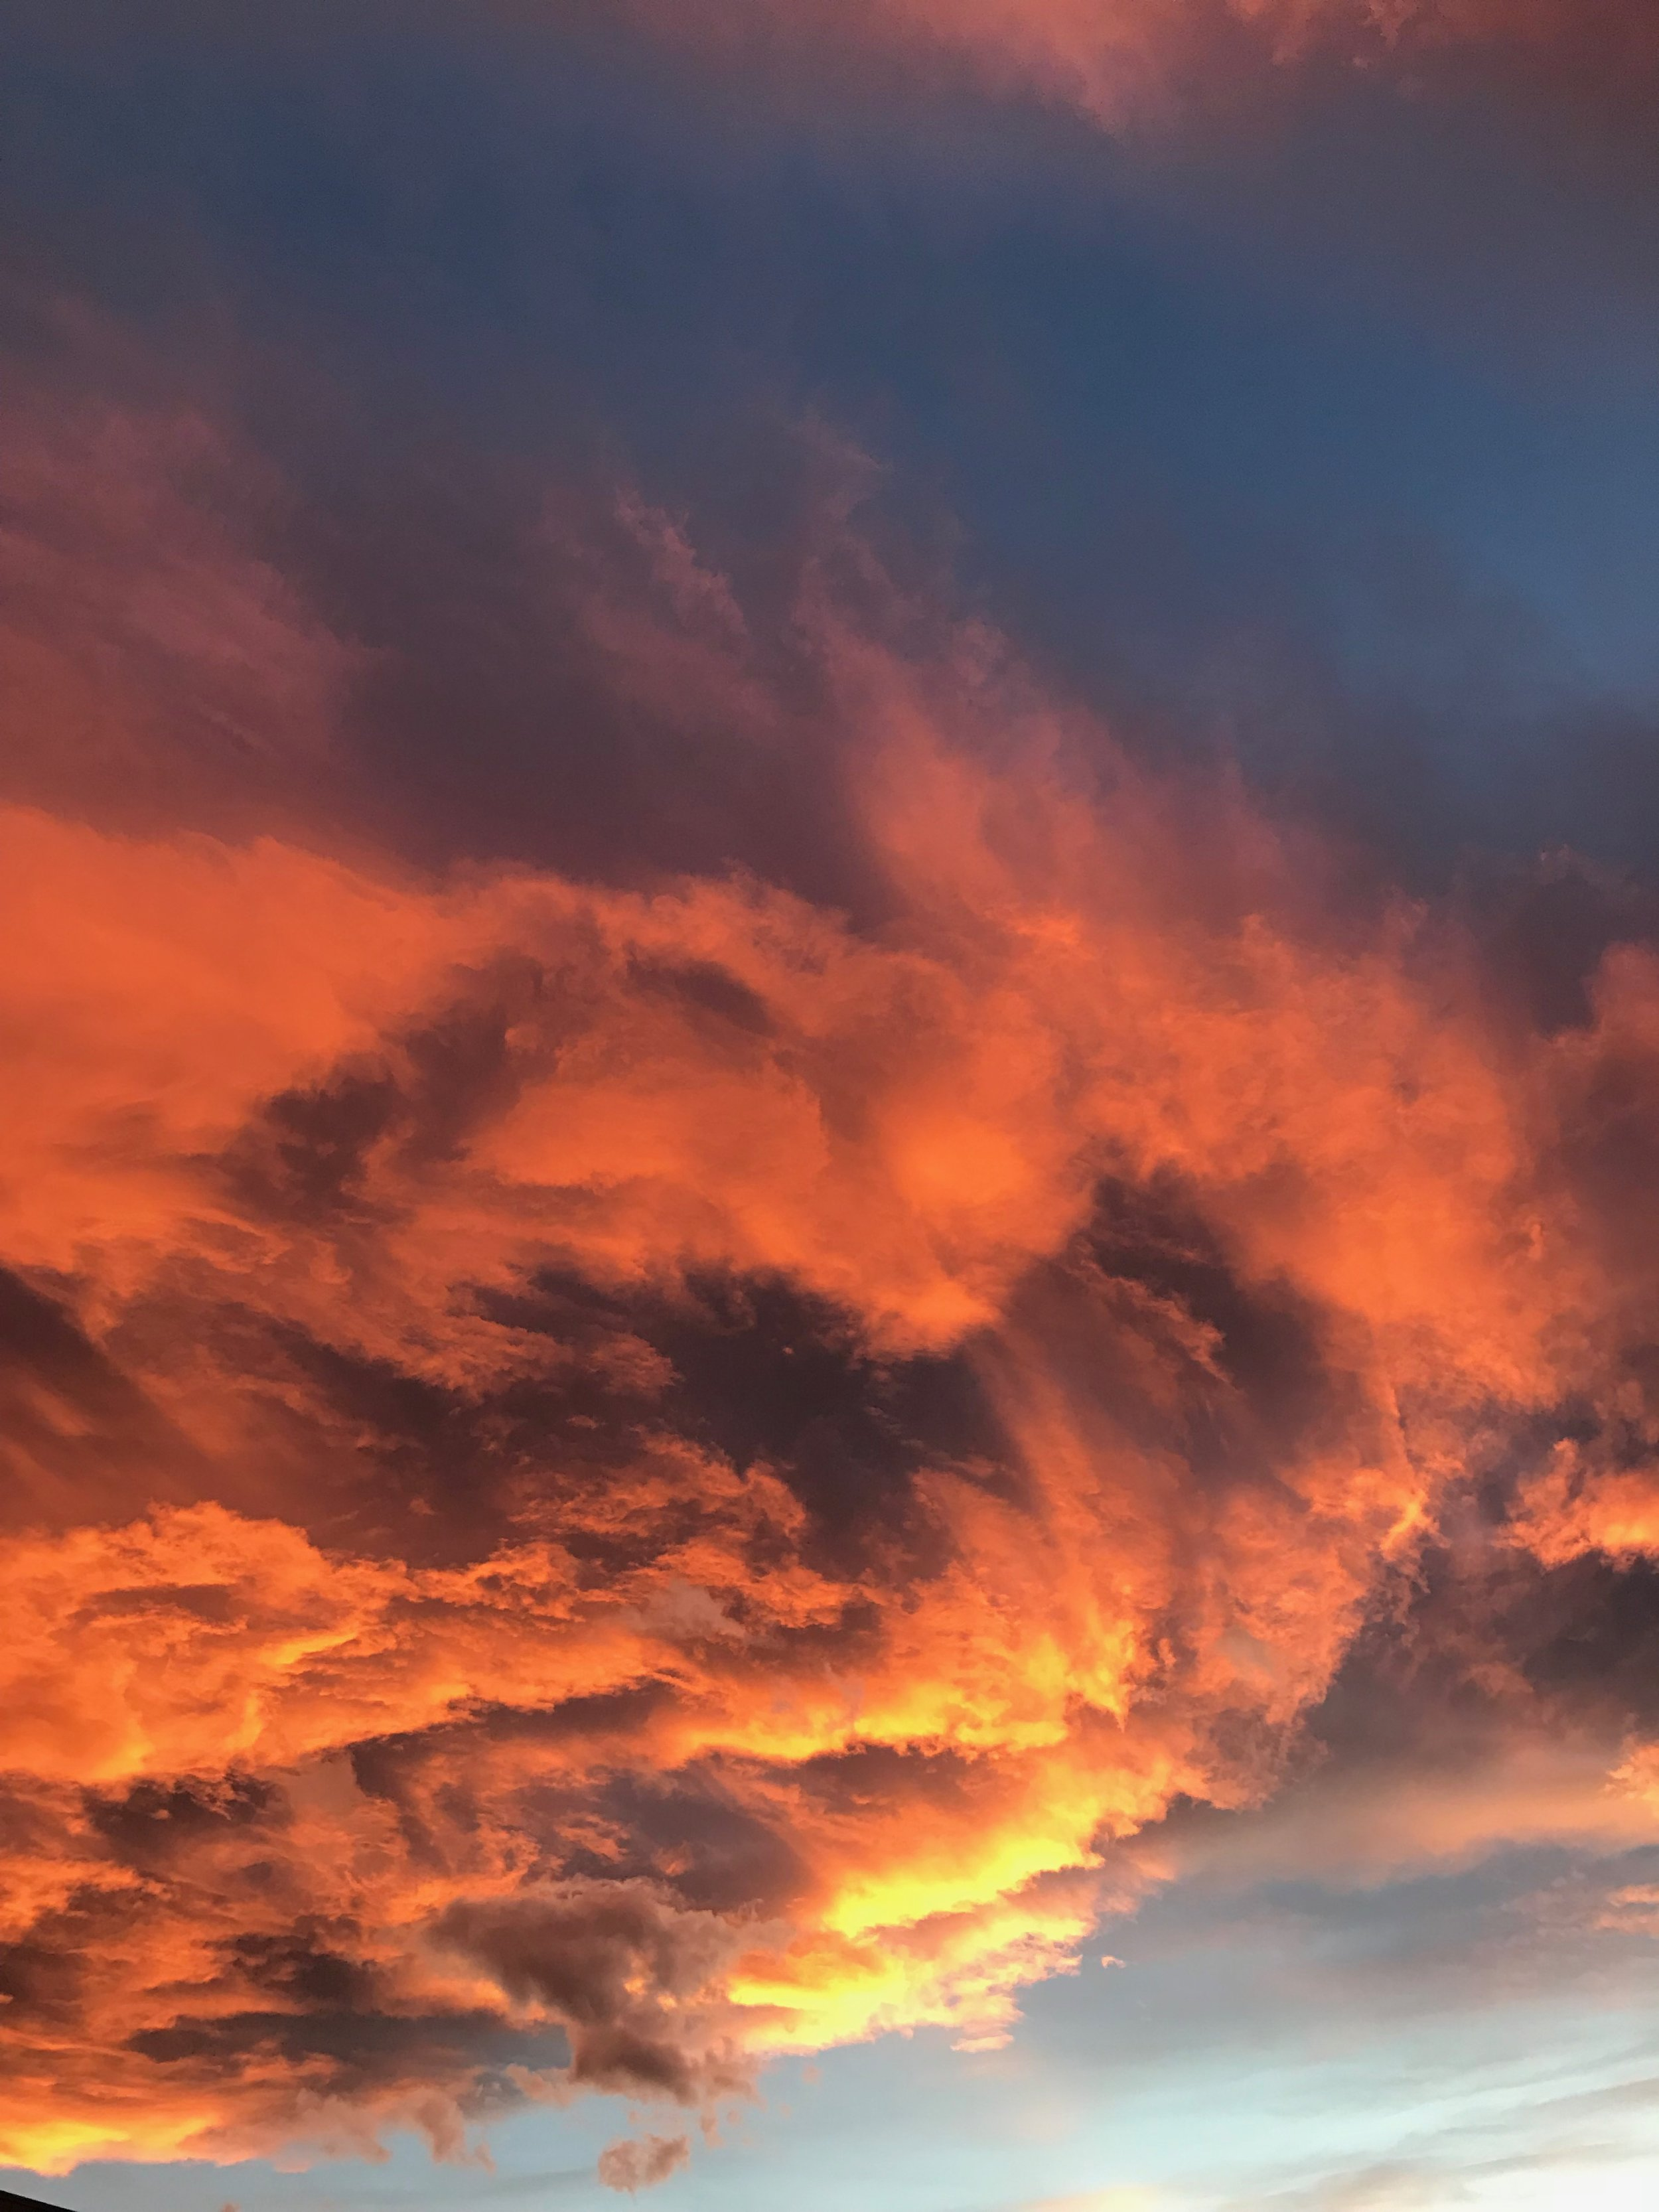 Unfiltered sky over Denver a few nights ago. Fall sunsets are the prettiest.